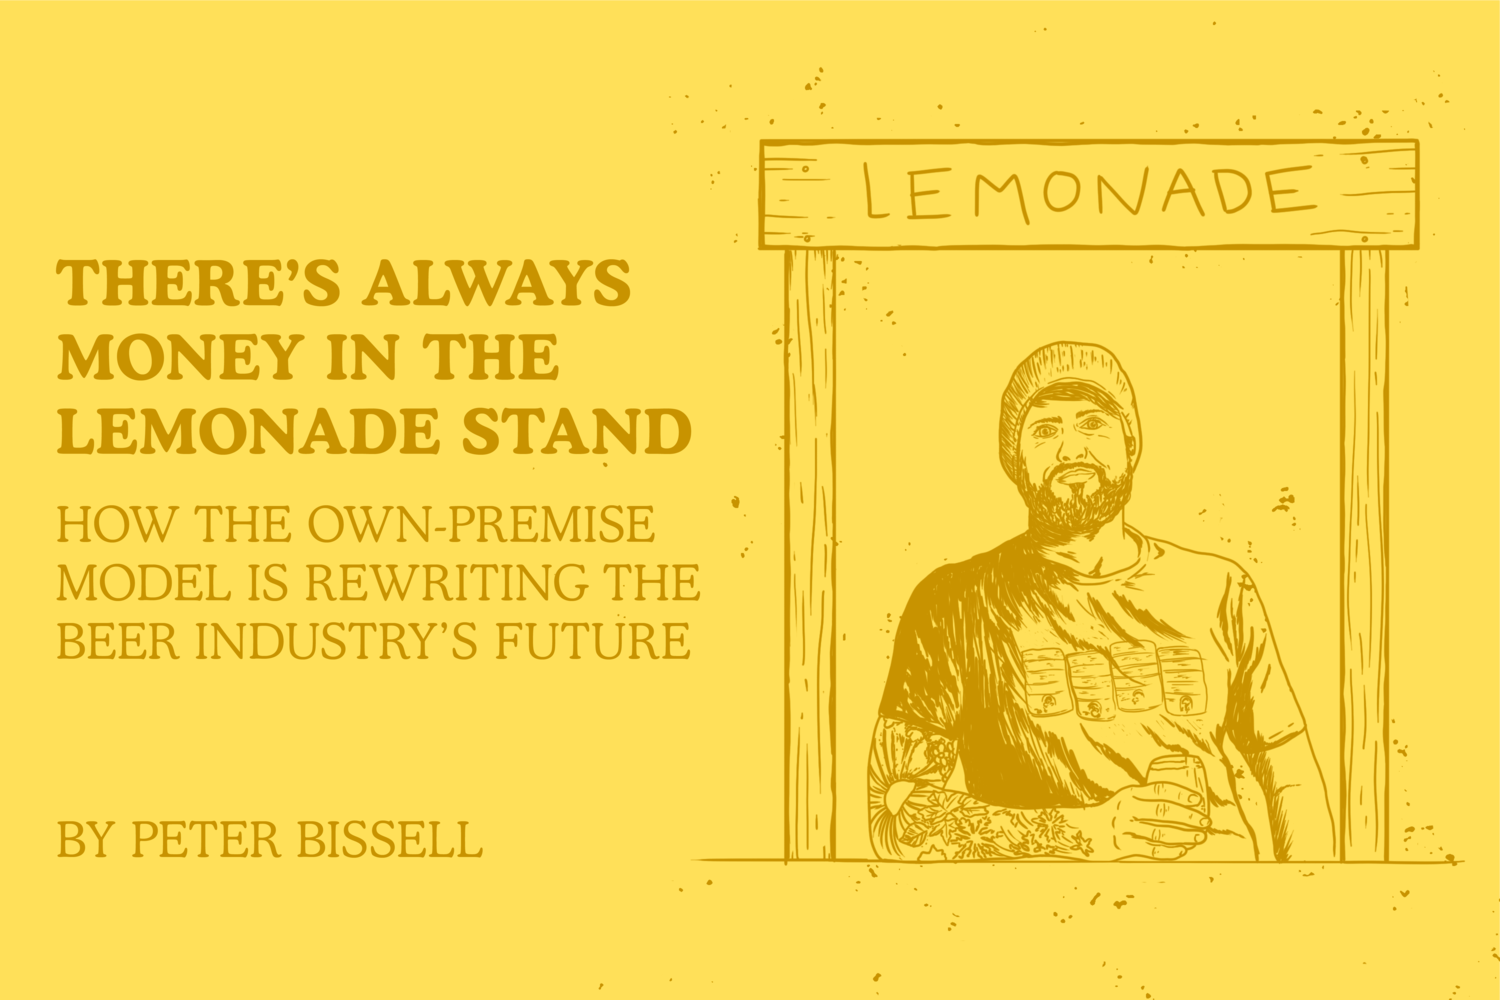 There's Always Money in the Lemonade Stand — How the Own-Premise Model is Rewriting the Beer Industry's Future